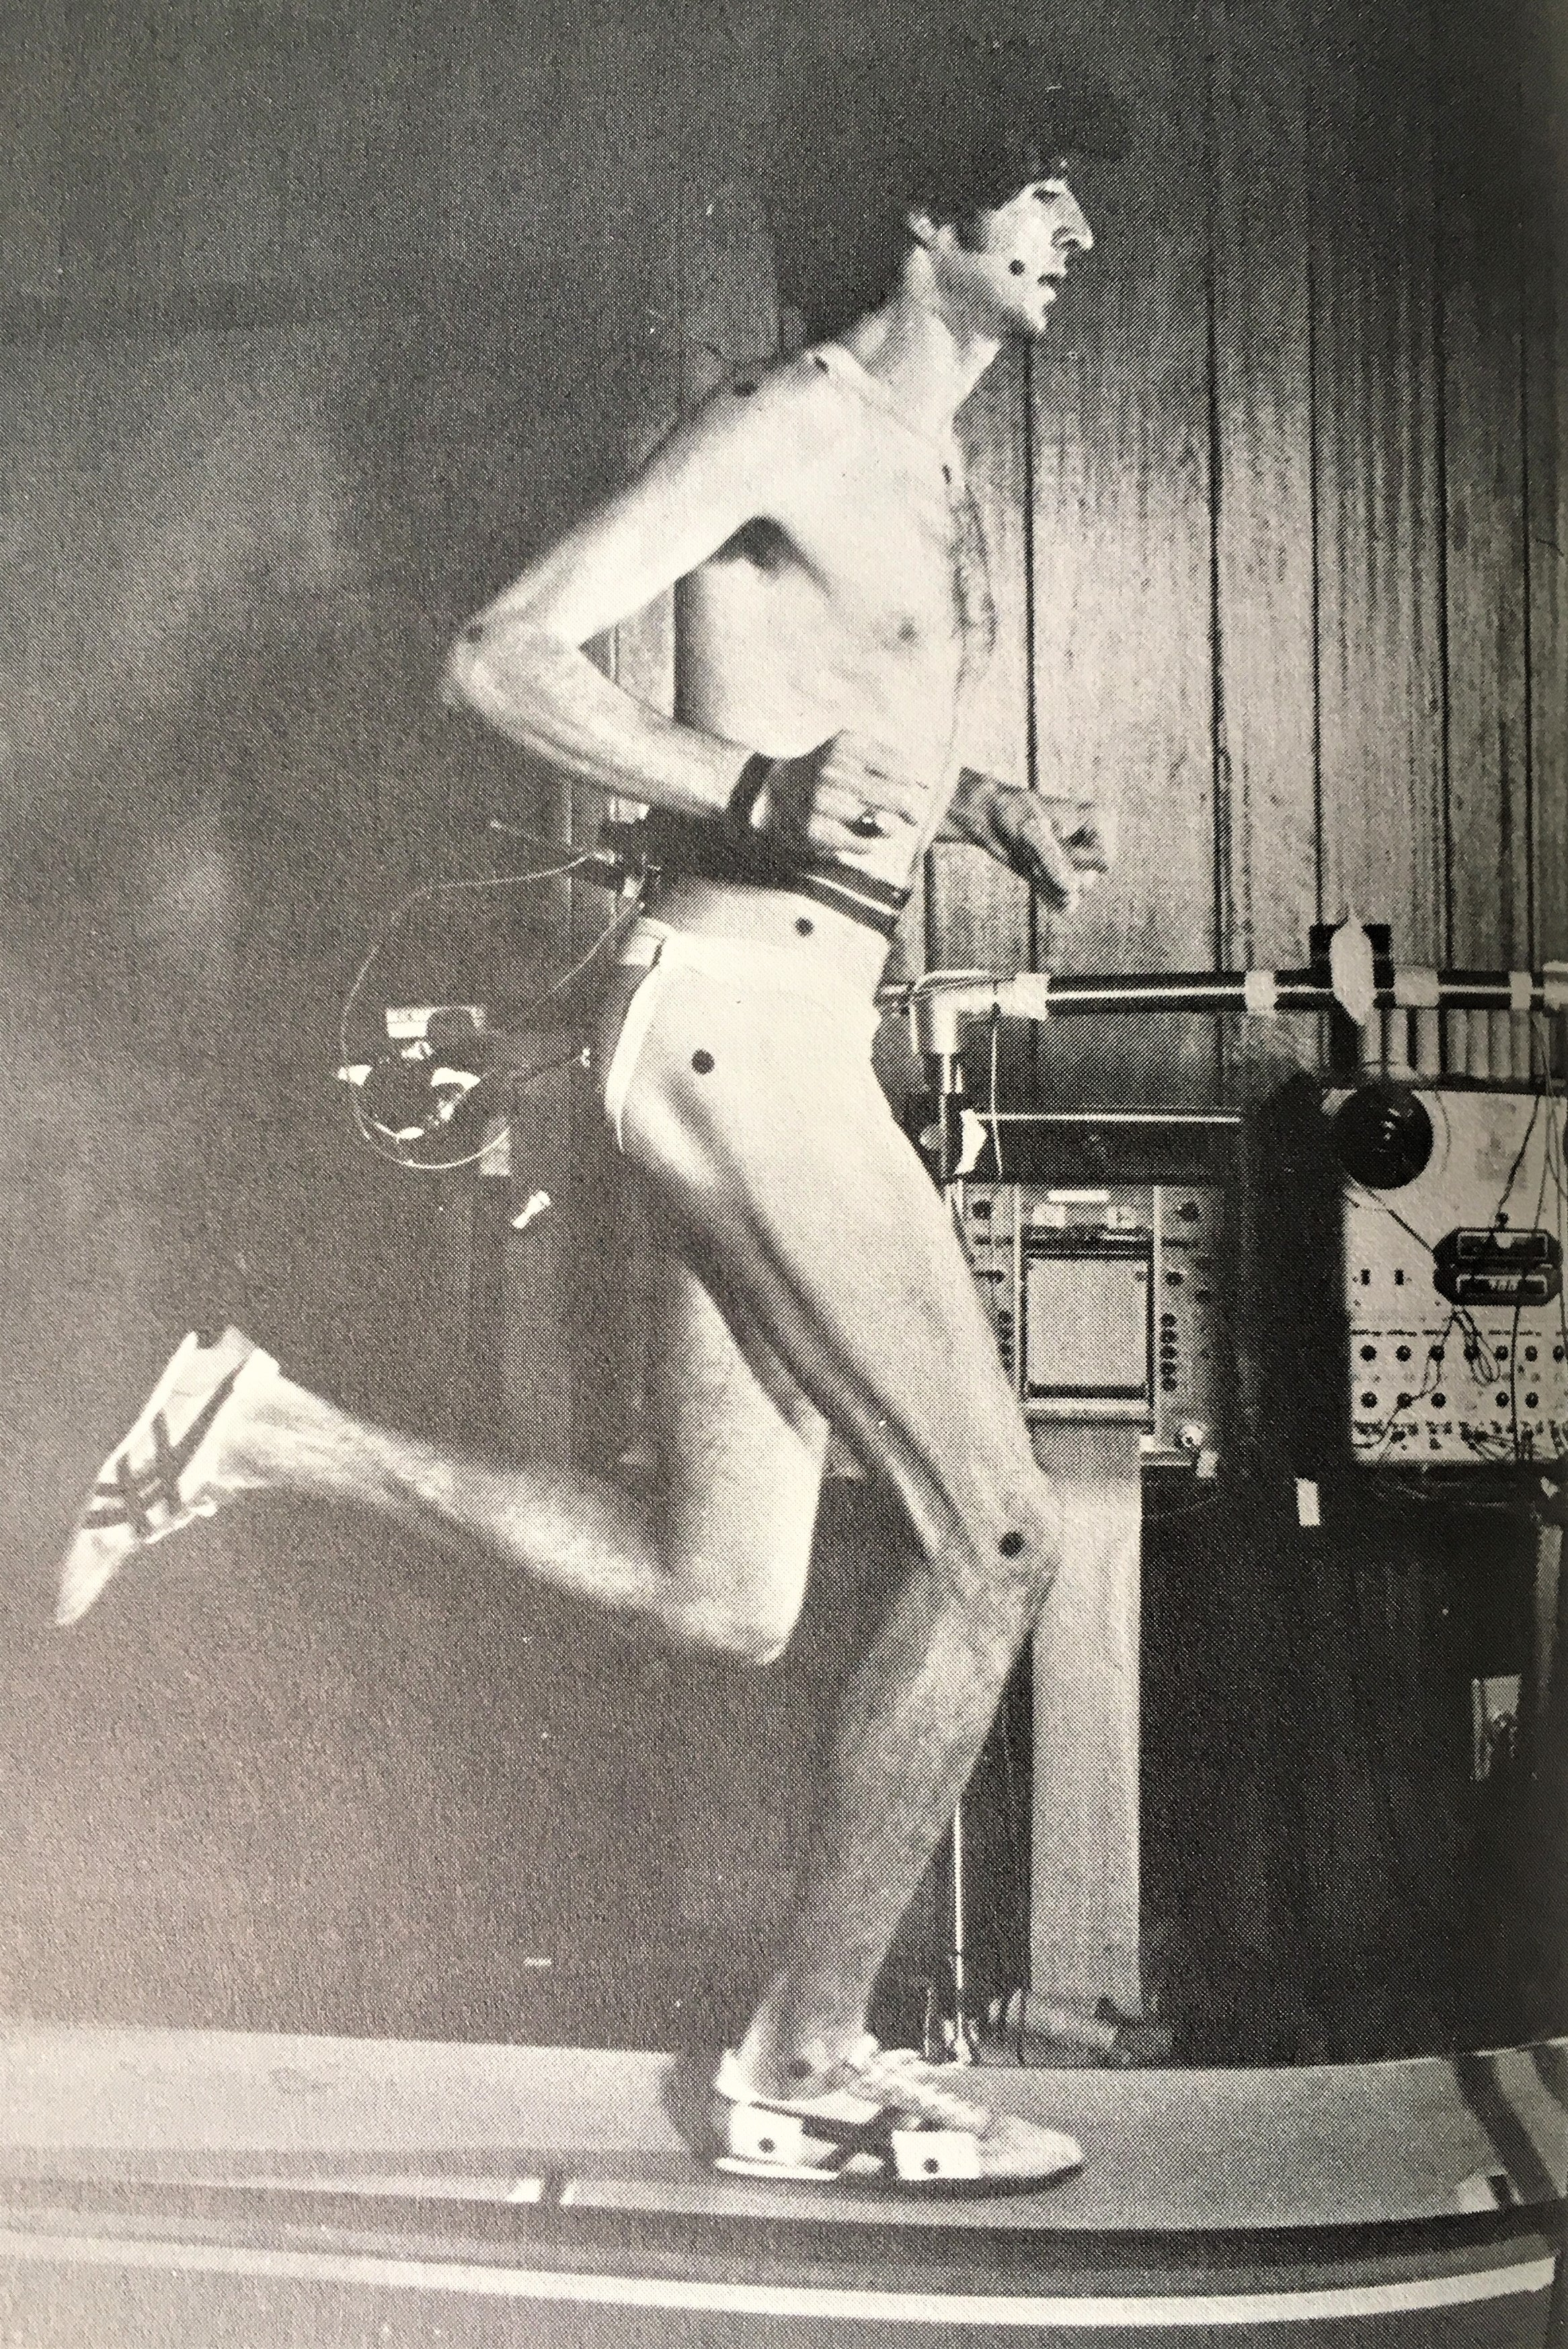 Frank Shorter being tested at Peter Cavanagh's lab